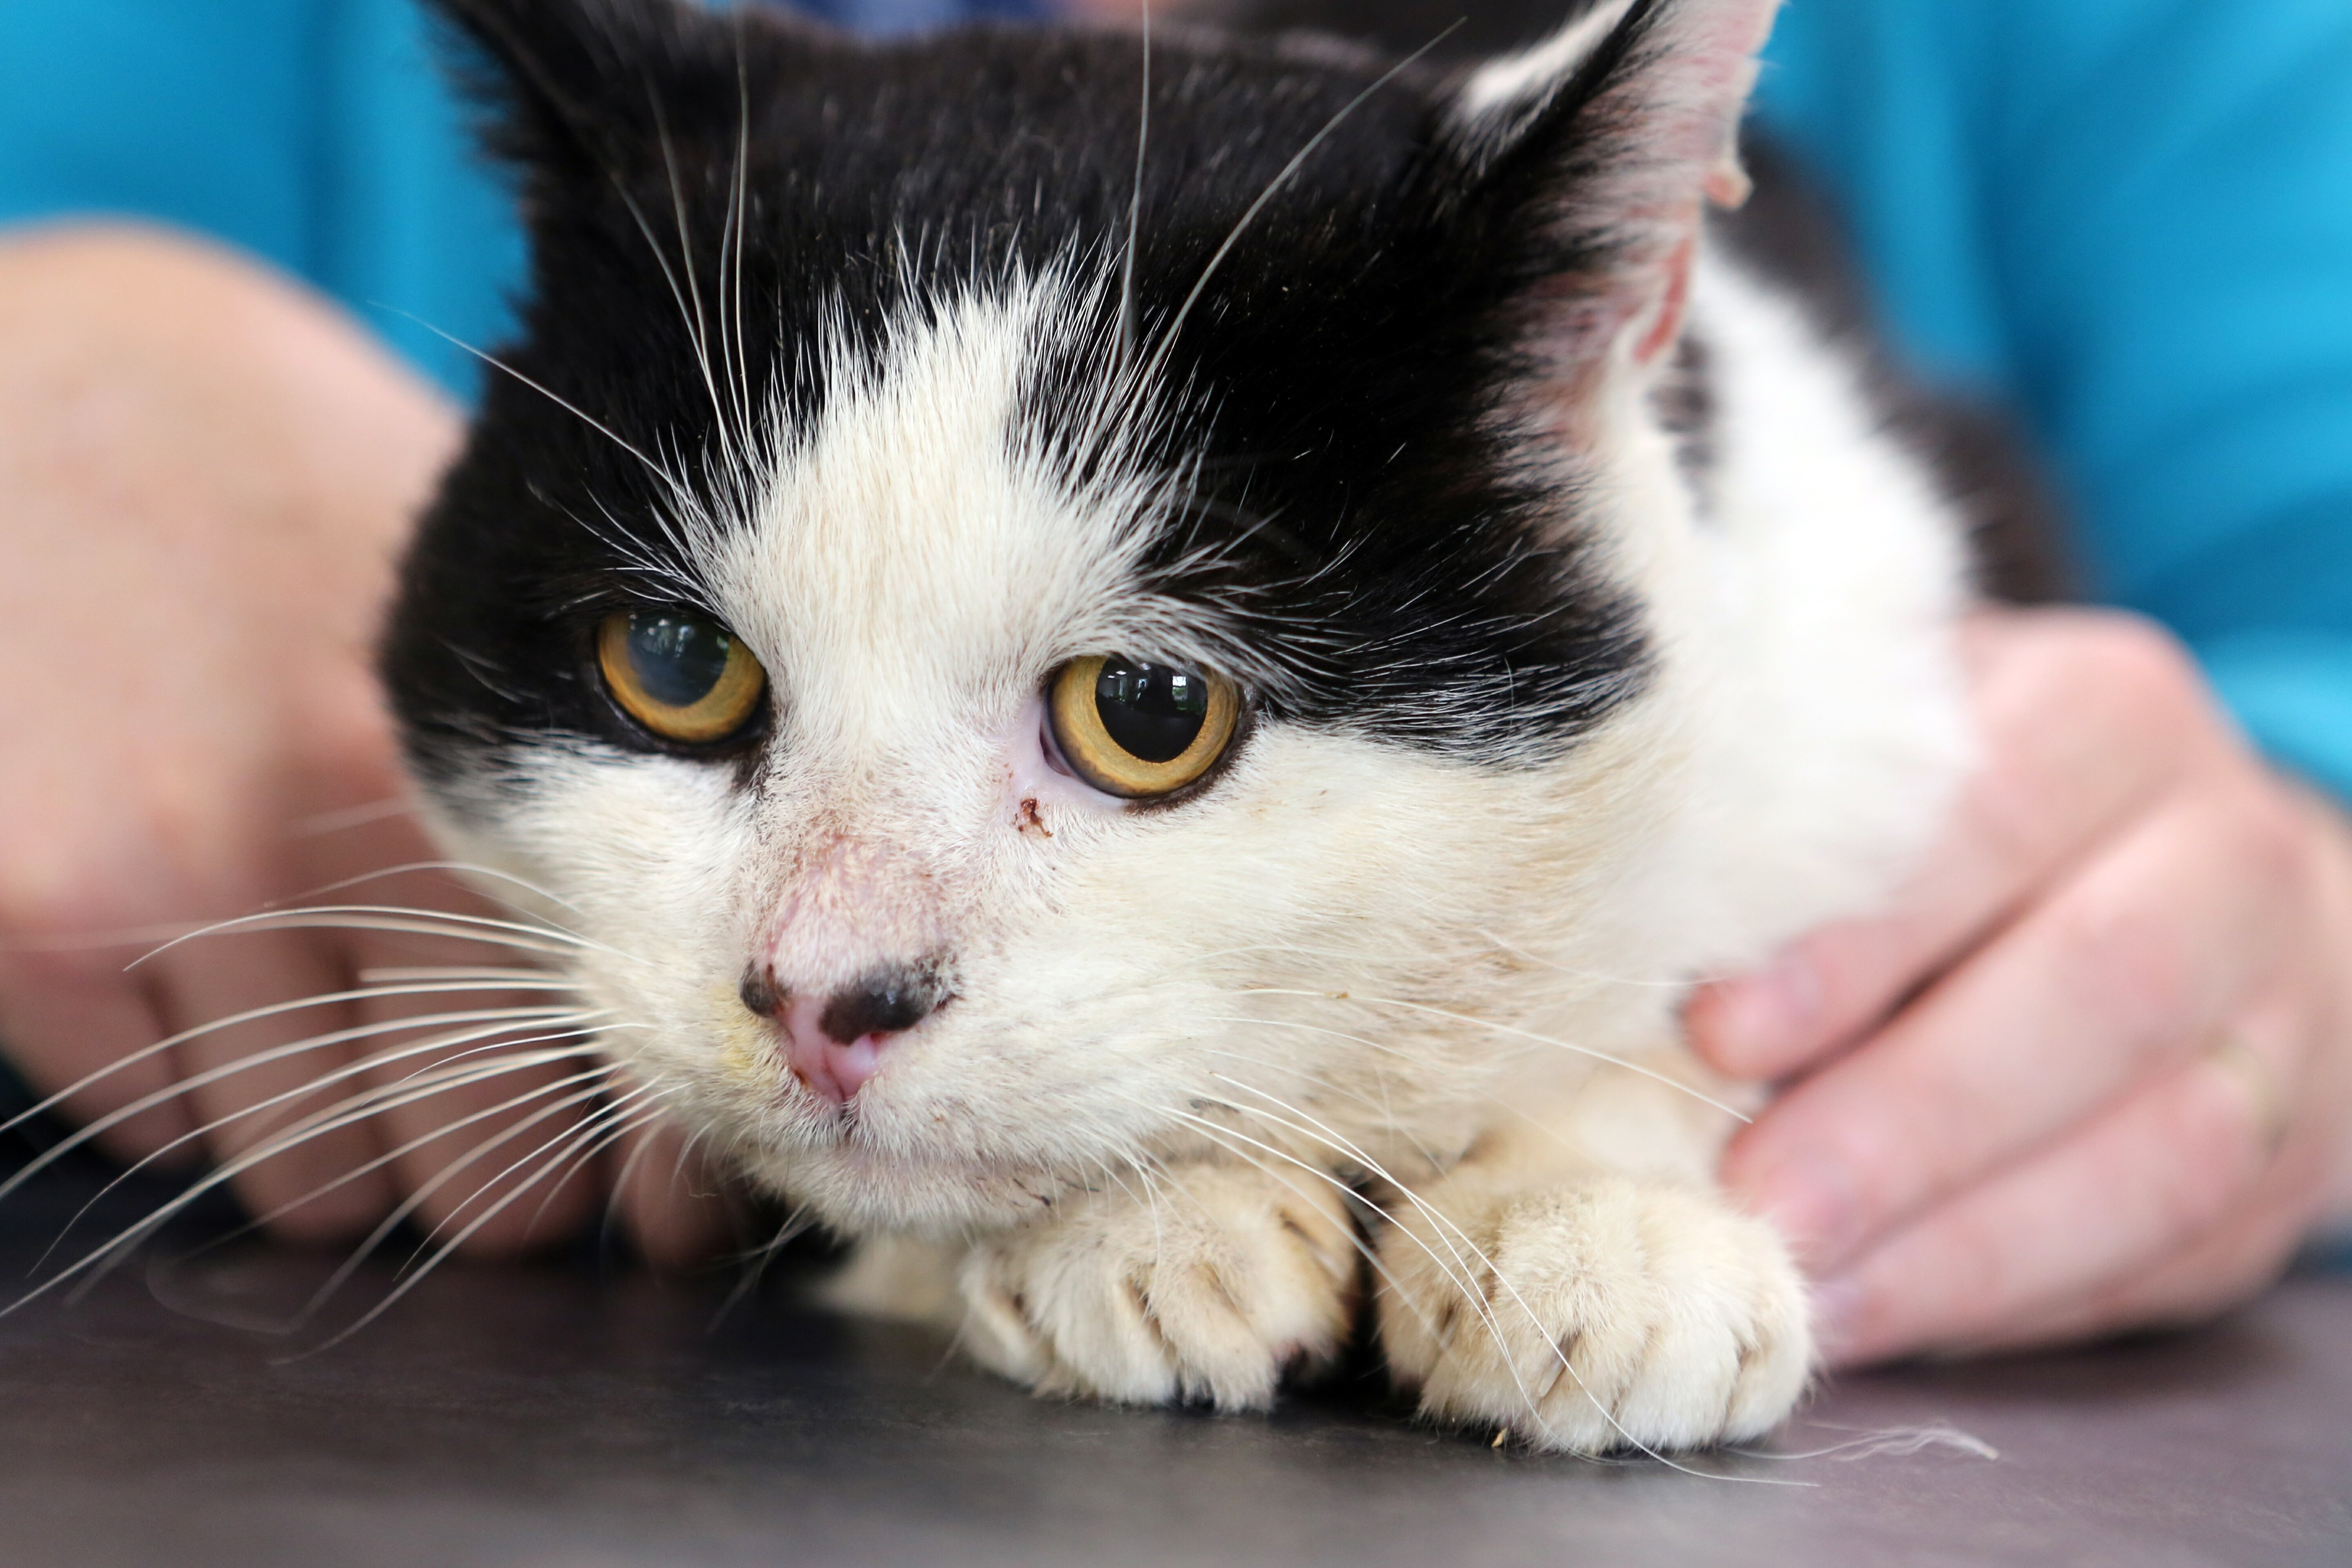 Angus the cat is one of hundreds that the charity has helped.